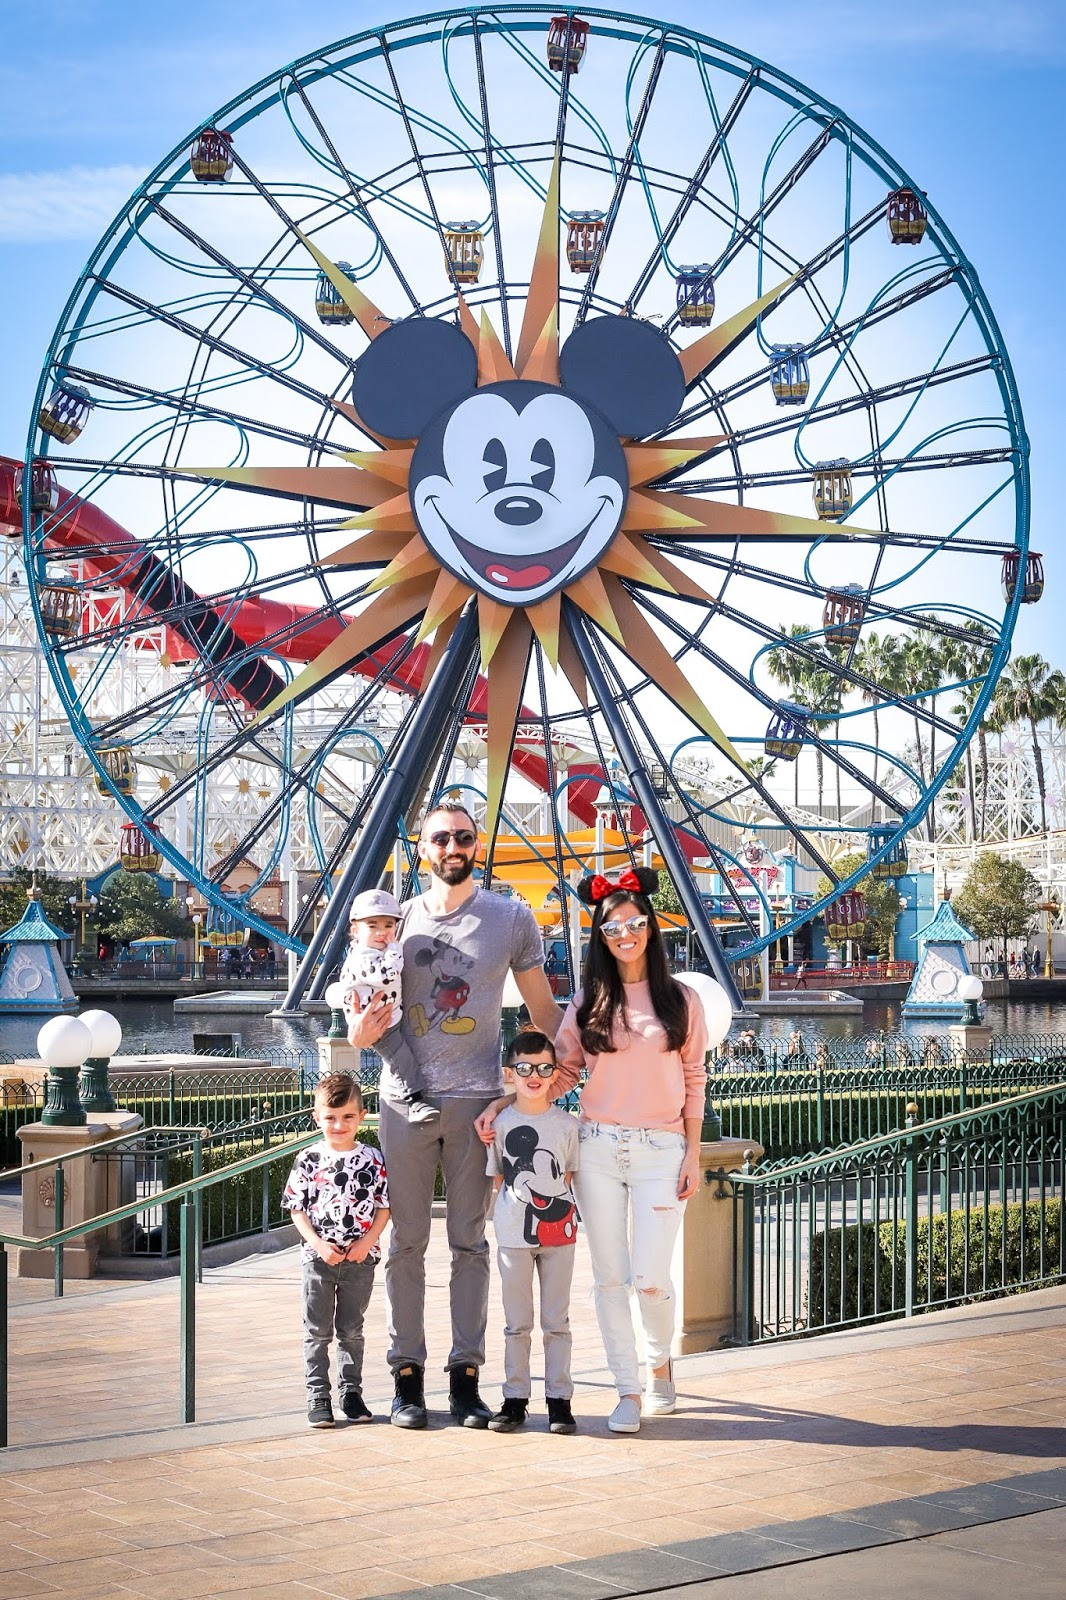 Where To Take Pictures in Disneyland